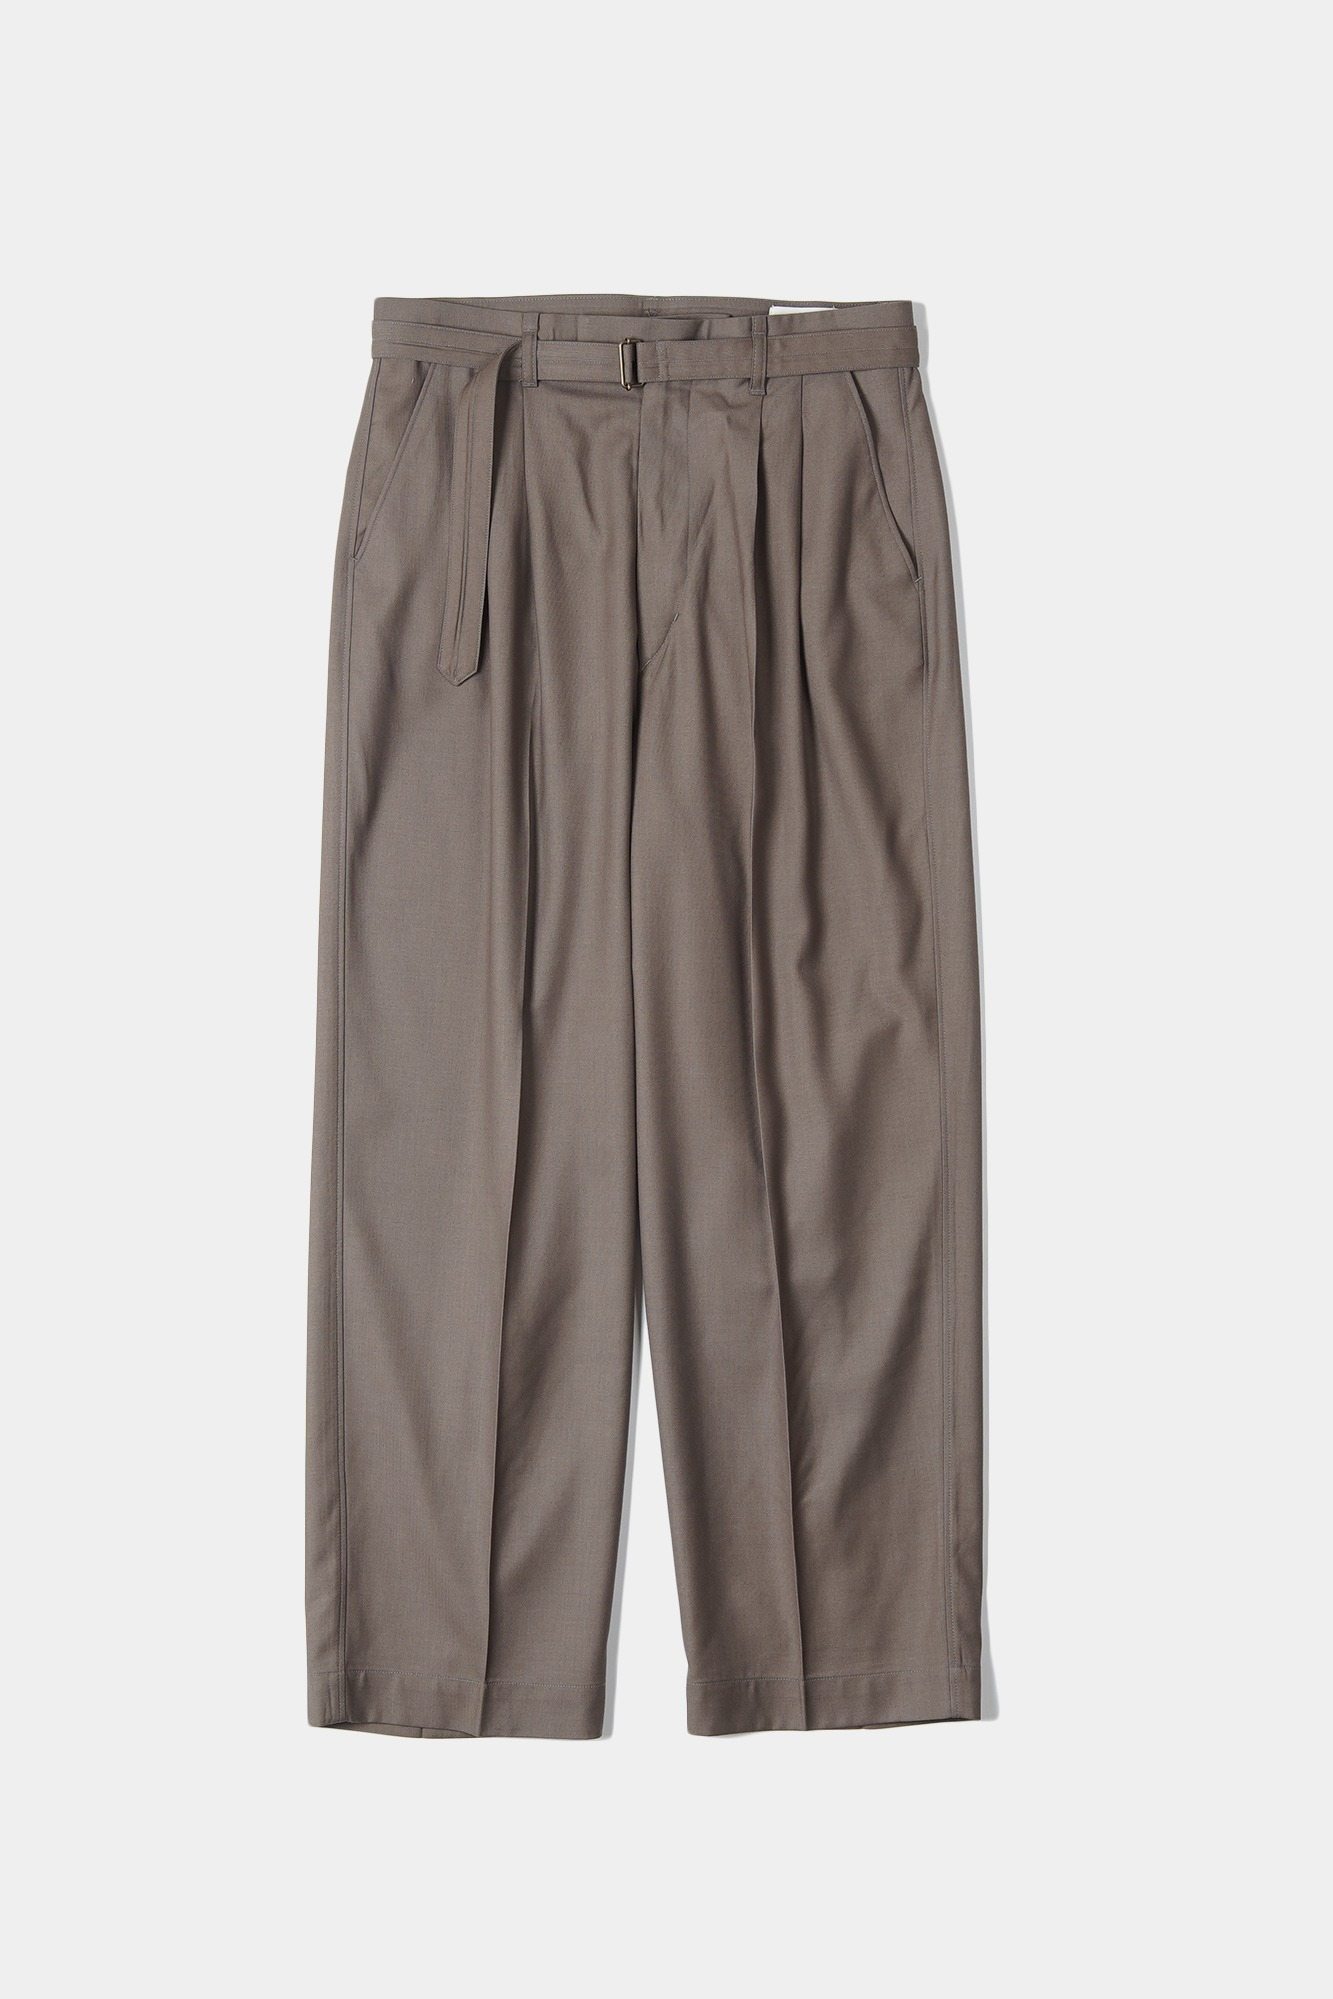 "OOPARTS Loose-fit belted pants ""Latte"""